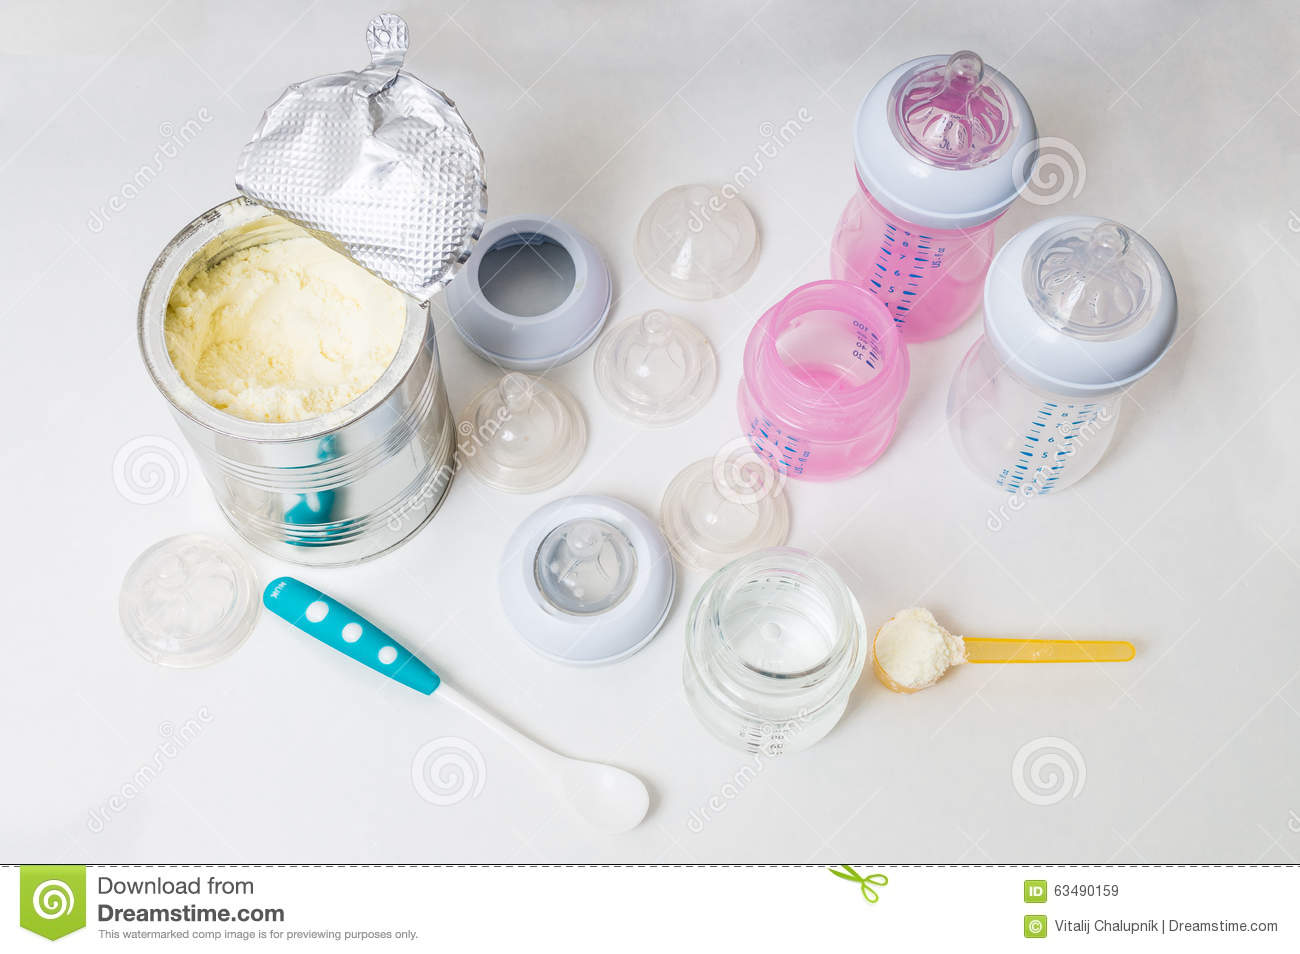 two baby bottles on cream color background 3d baby diaper pin clipart baby diaper clipart free